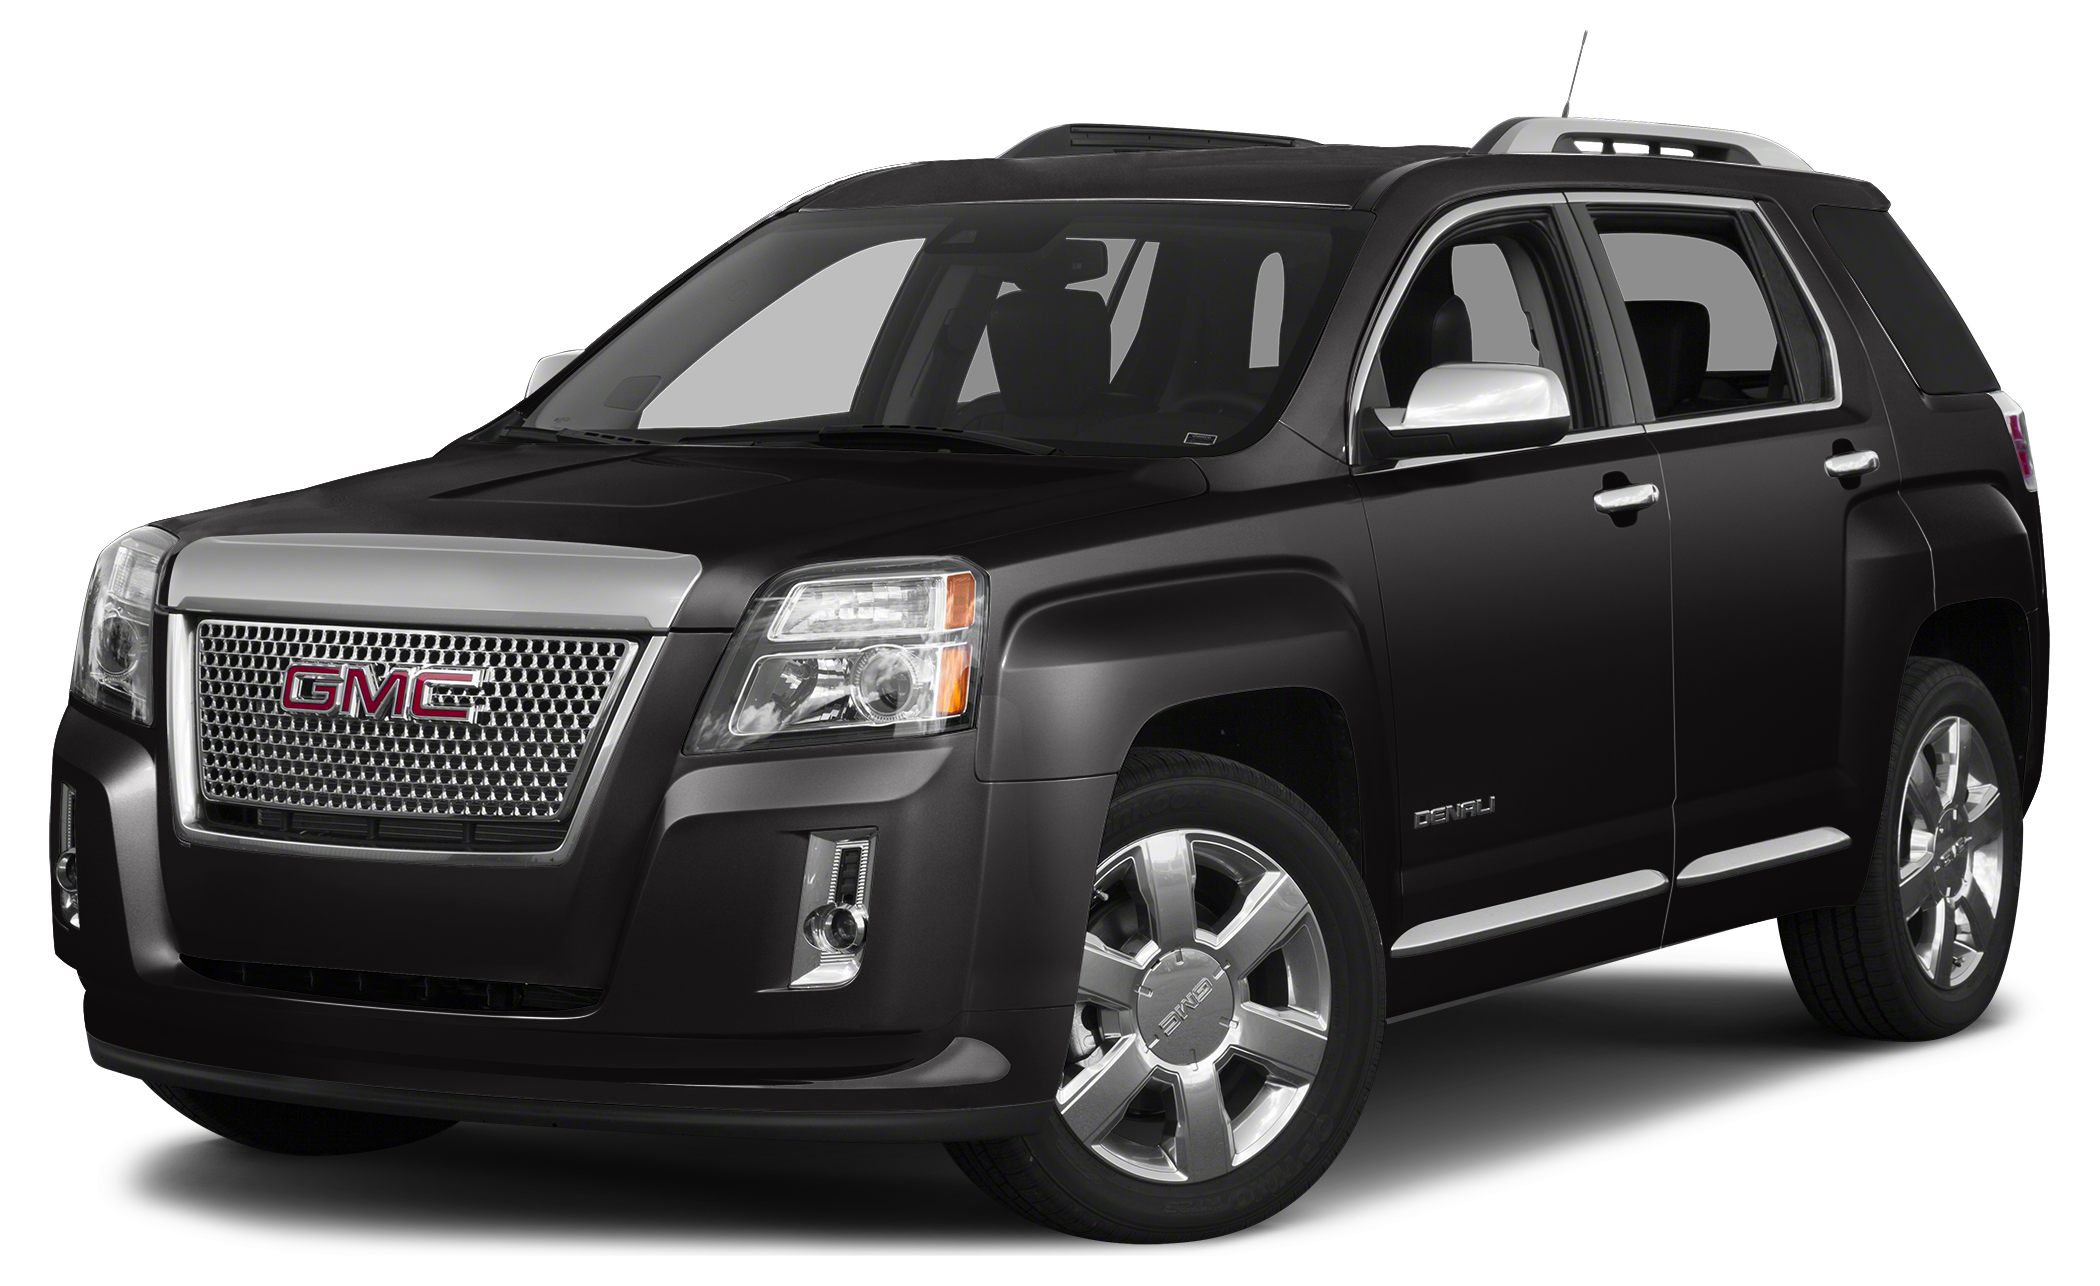 2013 GMC Terrain Denali DISCLAIMER We are excited to offer this vehicle to you but it is currently